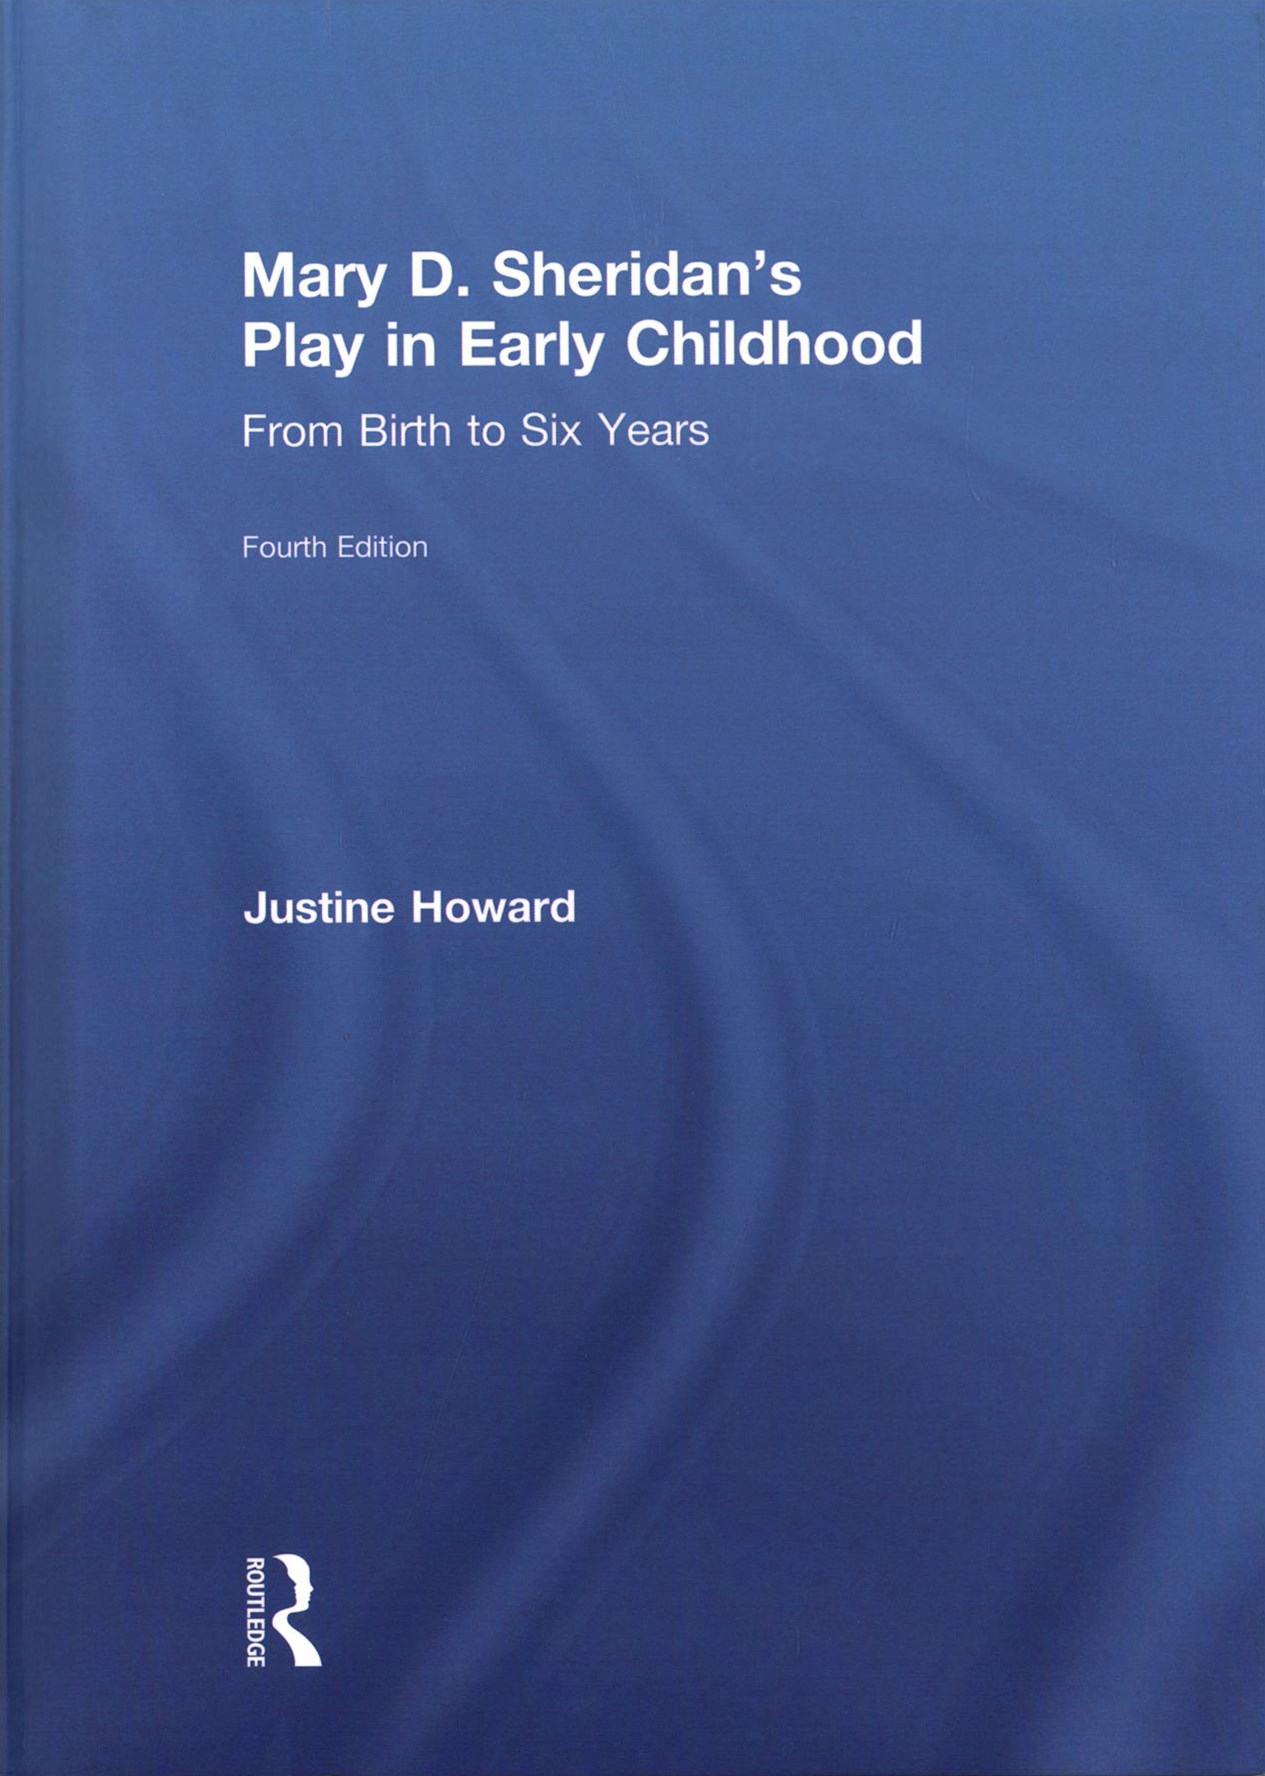 Mary D. Sheridan's Play in Early Childhood